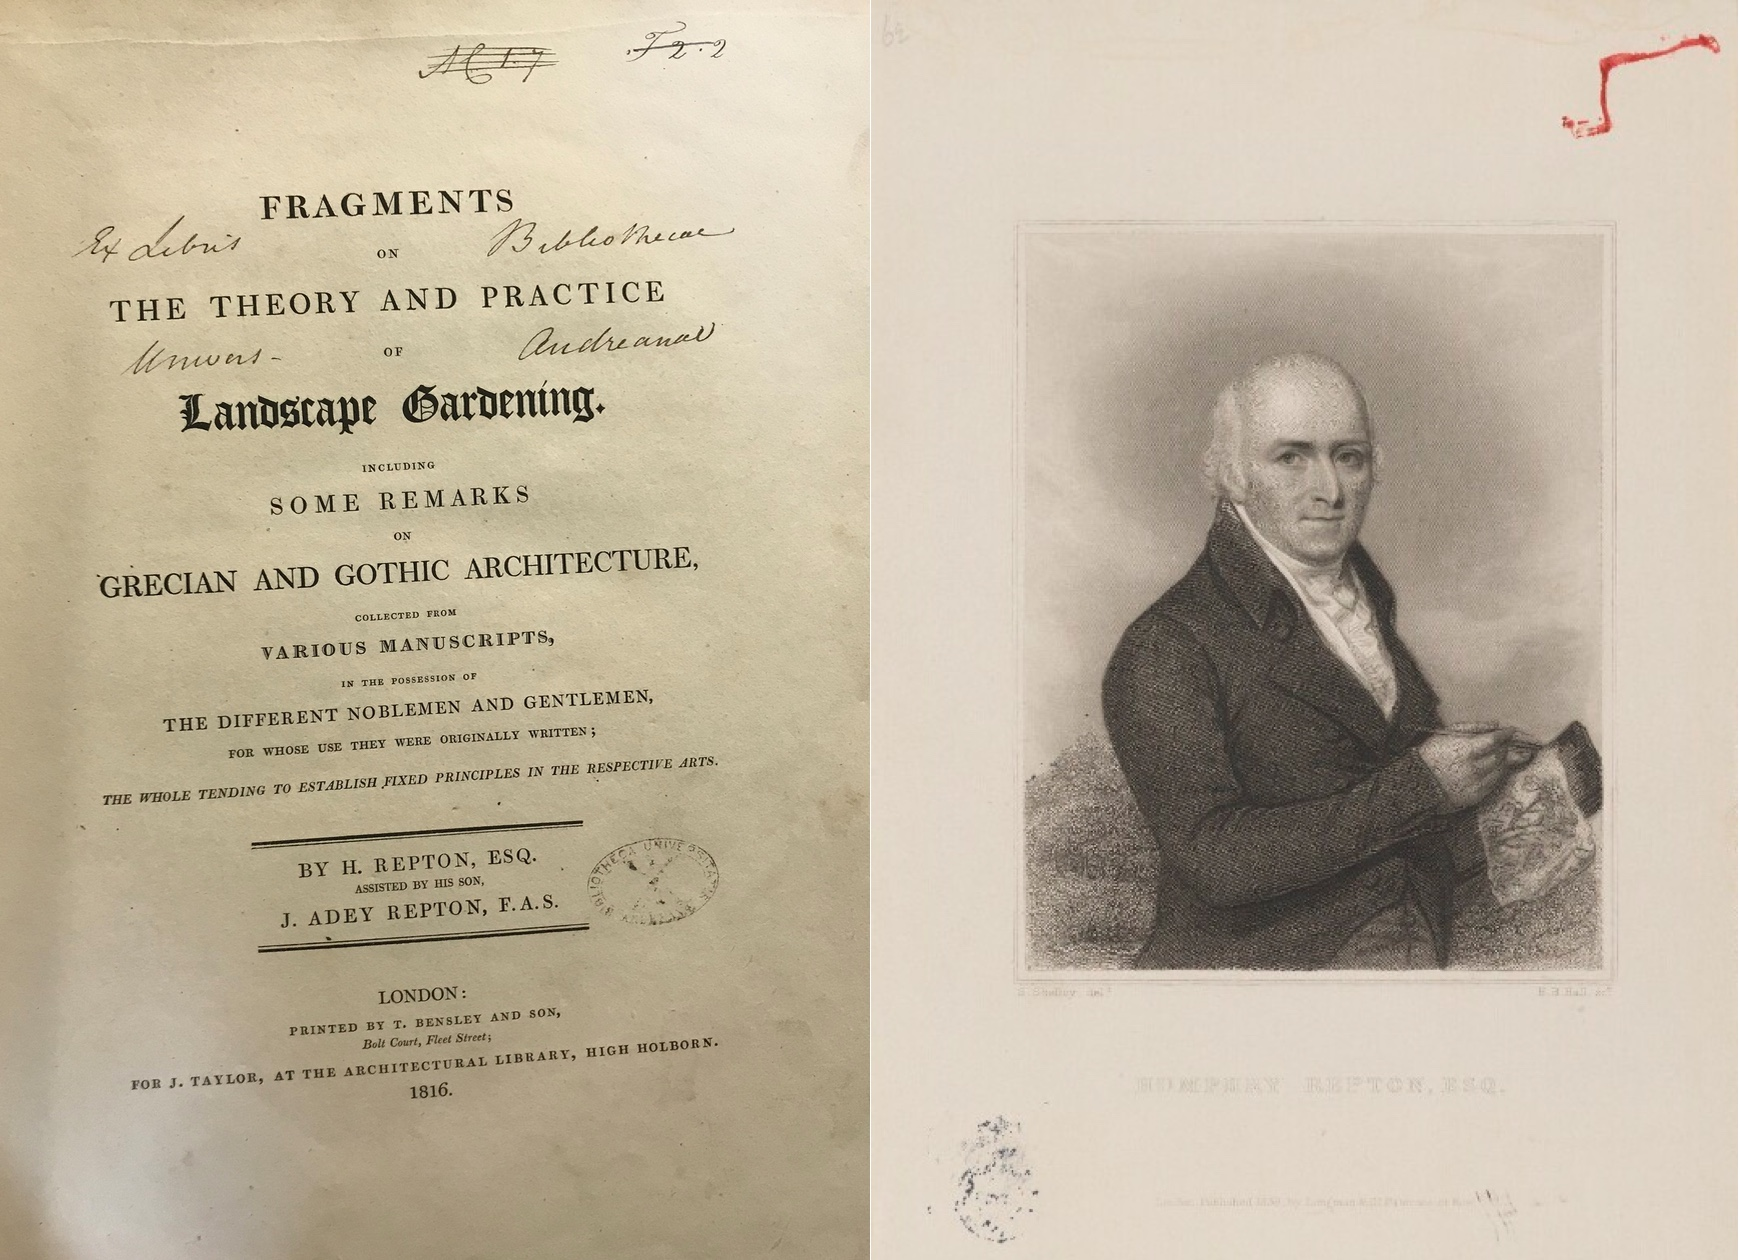 """Humphry Repton's Fragments on the Theory and Practice of Landscape Gardening"""